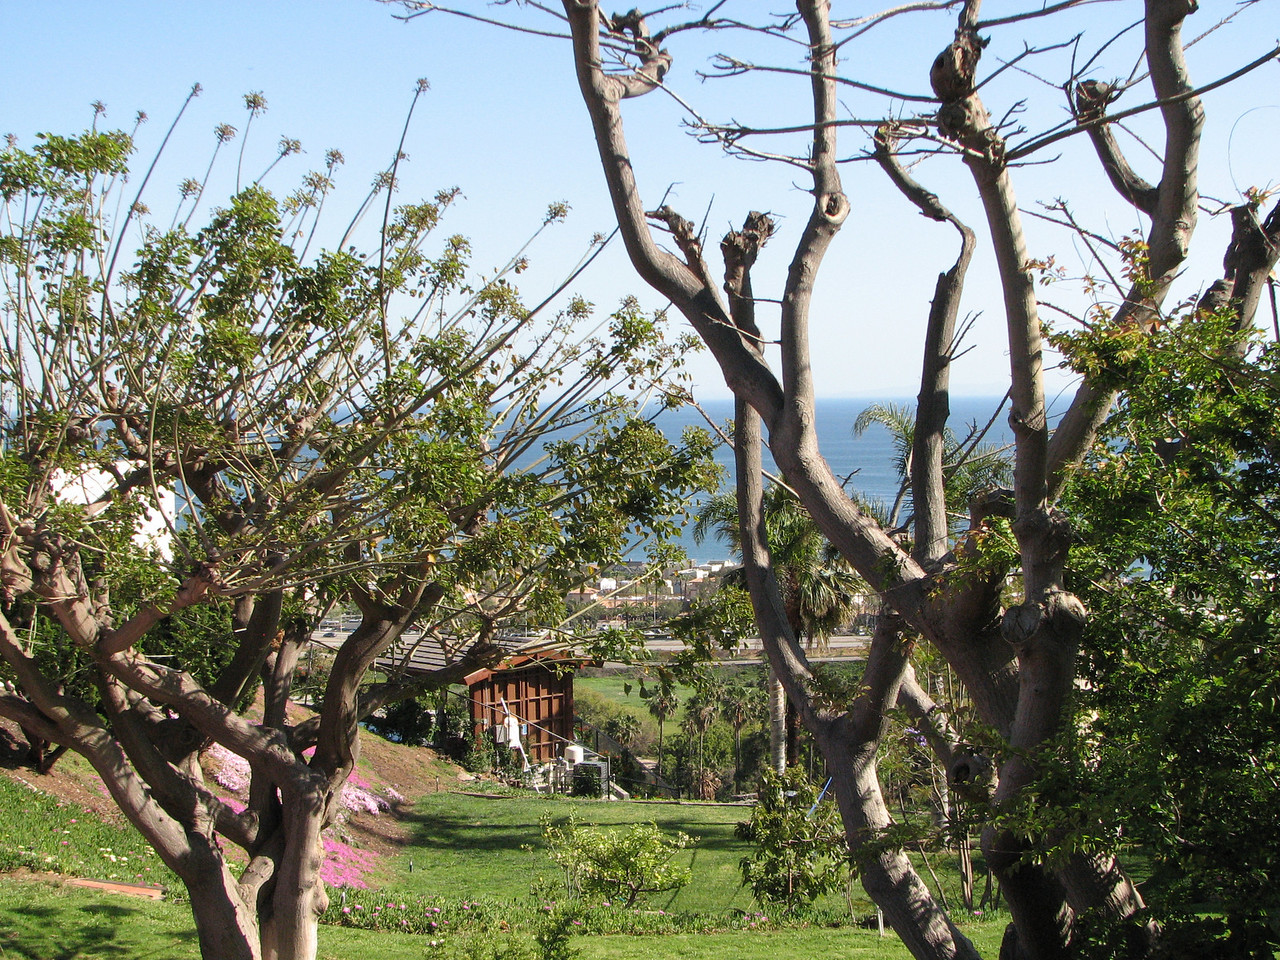 2008 04 12 Sat - View of Pacific Ocean through Malibu home trees